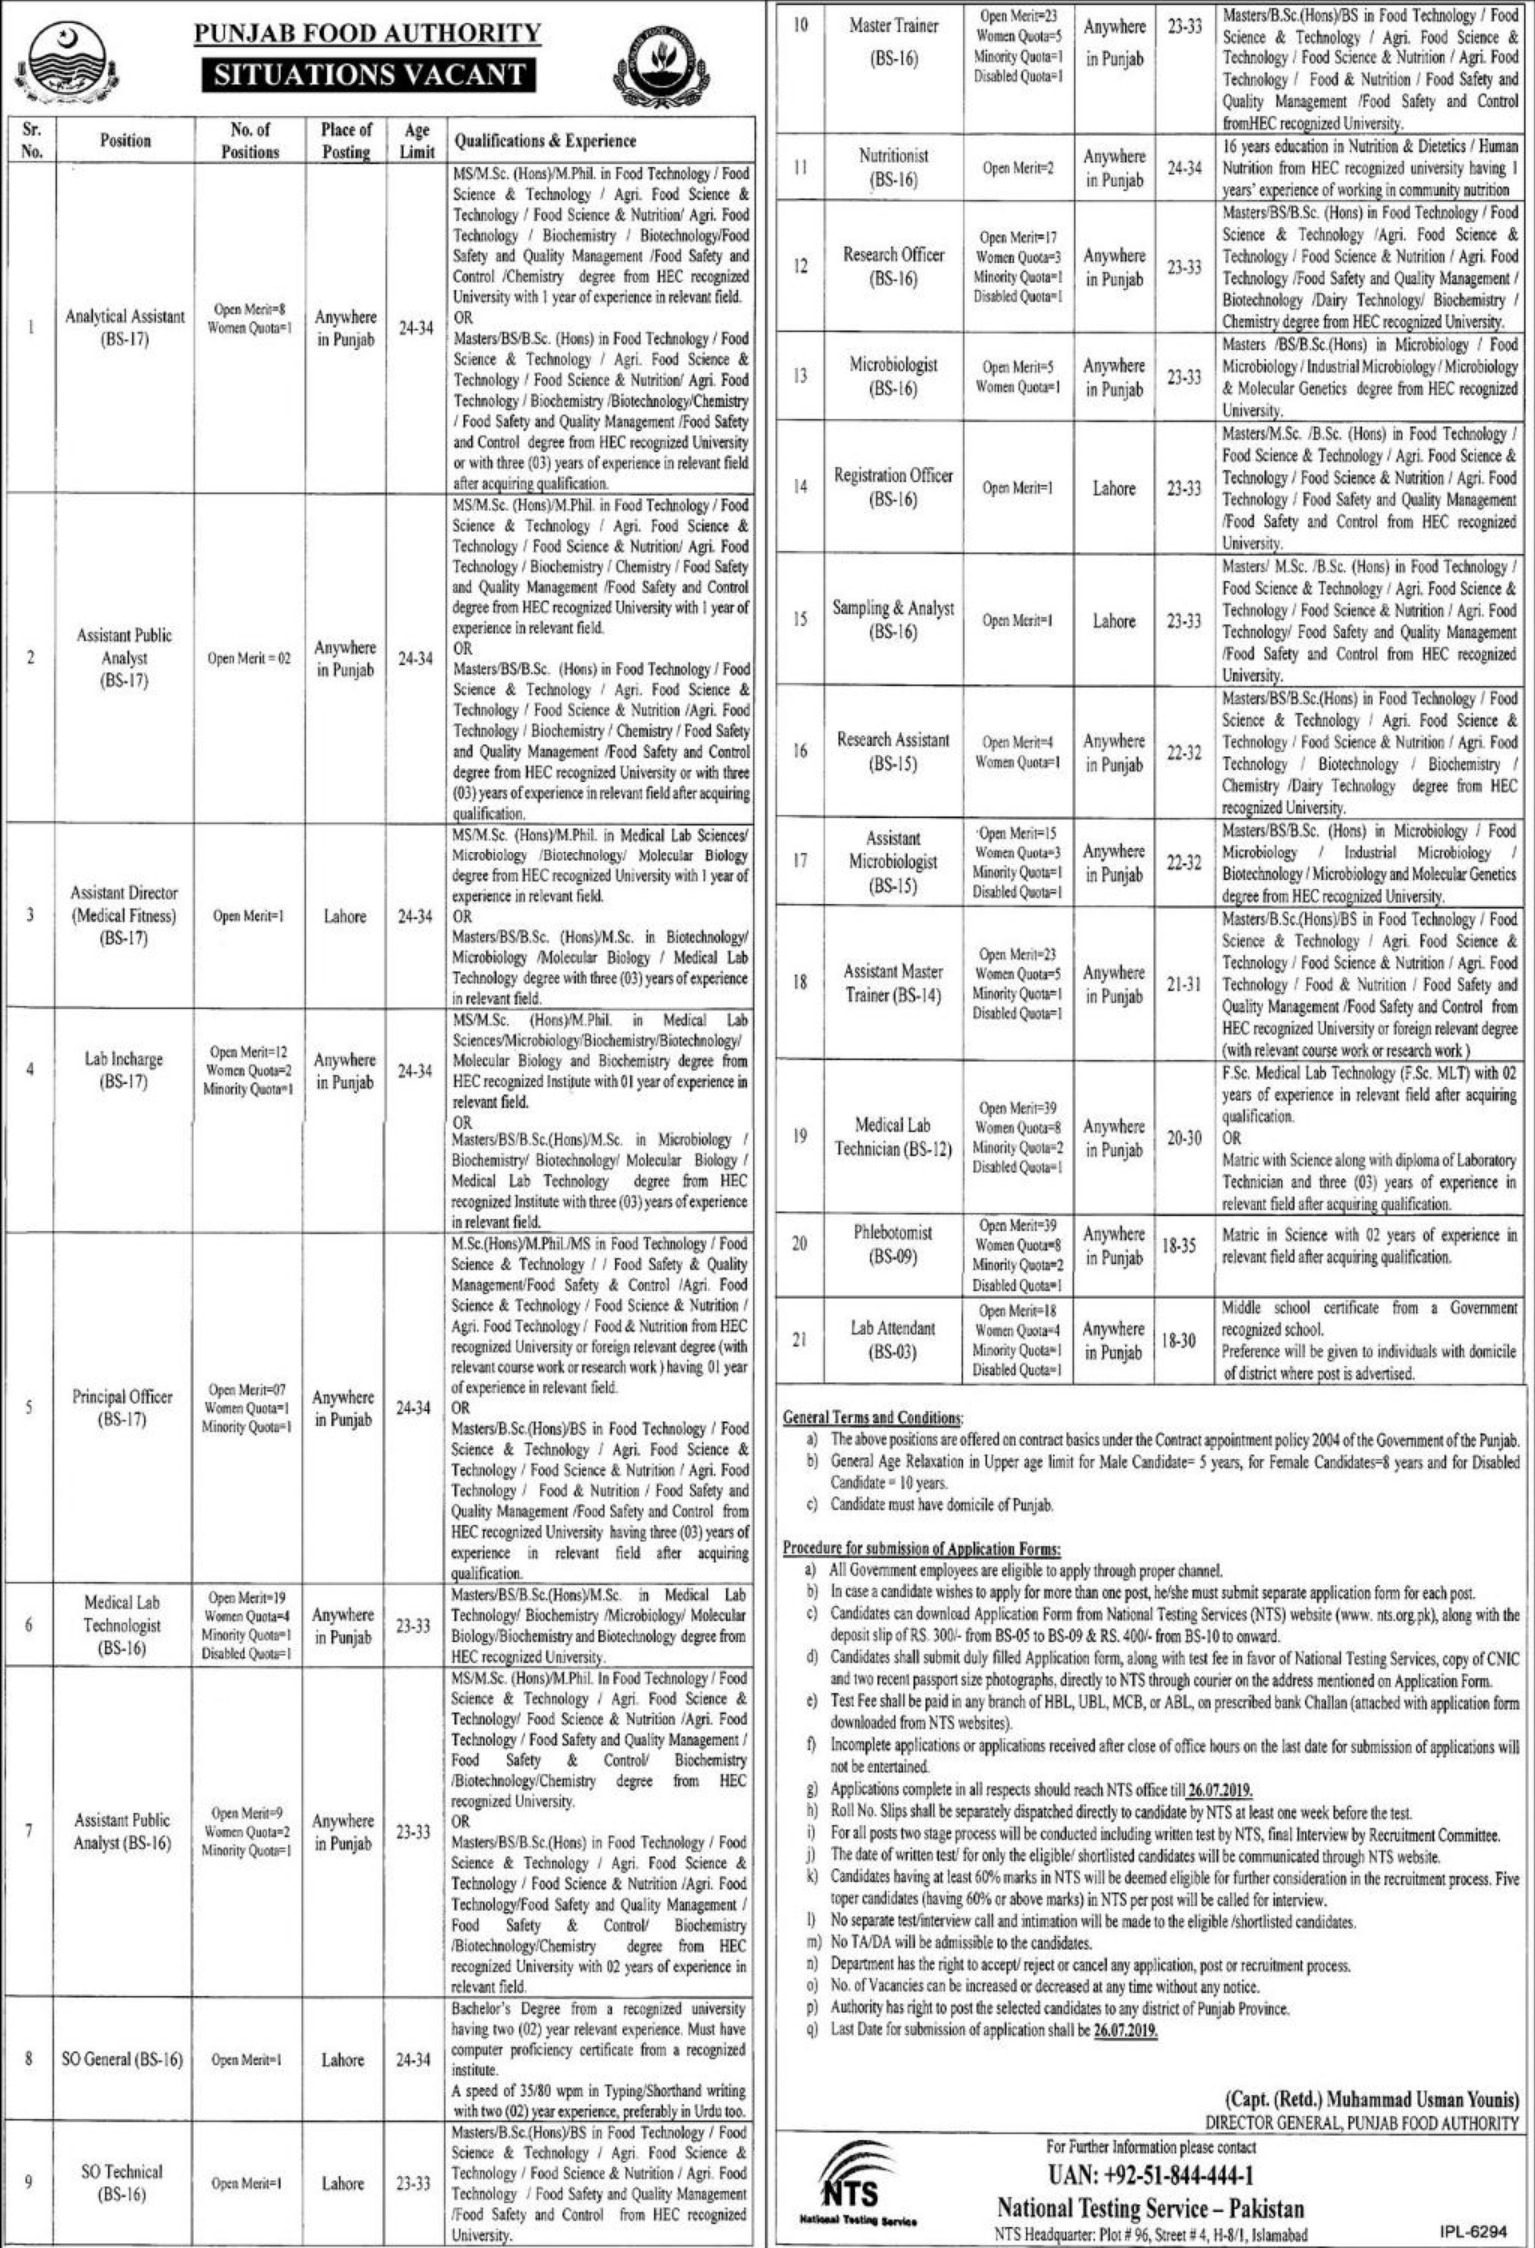 Punjab Food Authority PFA Jobs 2019 Download NTS Application Form